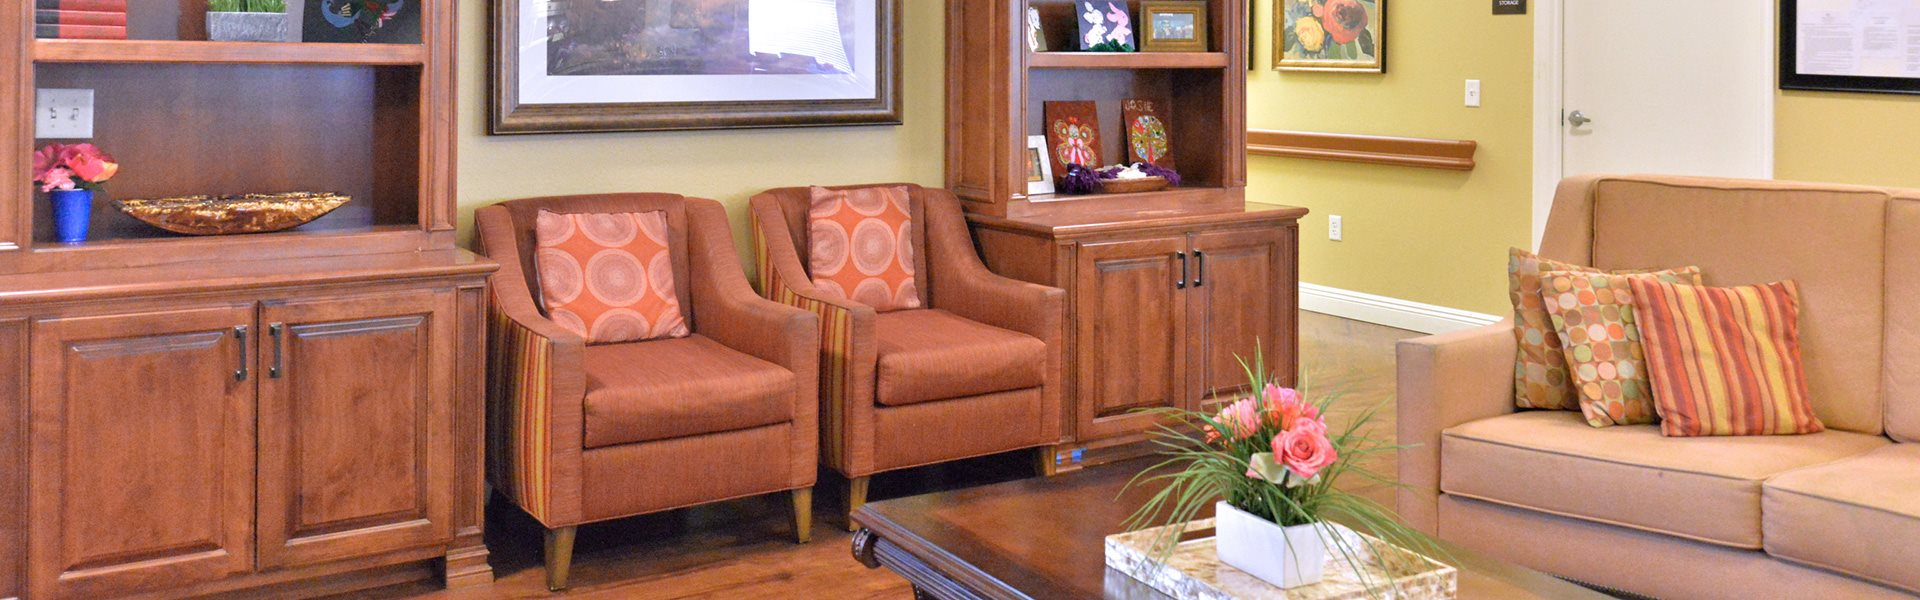 Assistance with activities of daily living at Pacifica Senior Living Paradise Valley, Paradise Valley